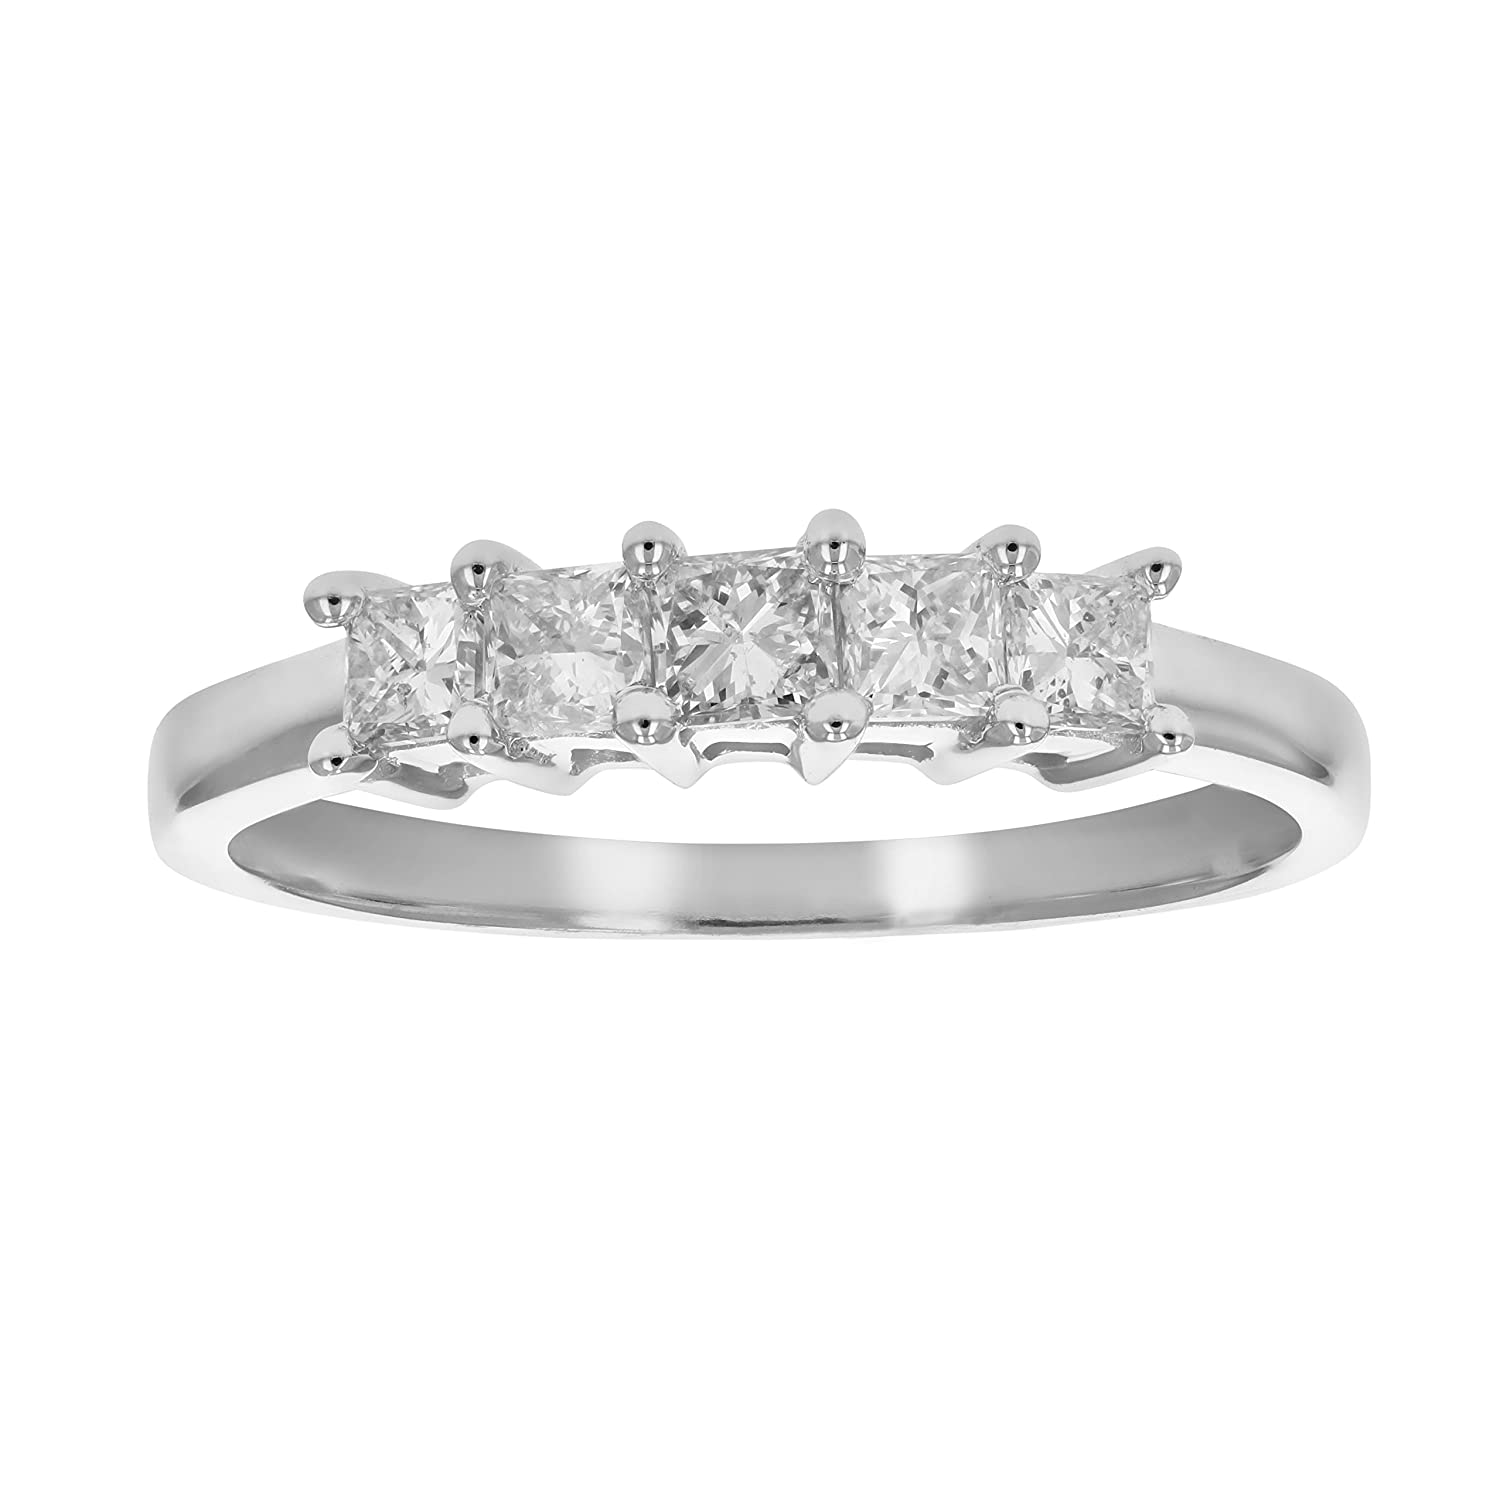 381d602efa0aa 1/2 CT 5-Stone Princess Diamond Ring in 14K White Gold